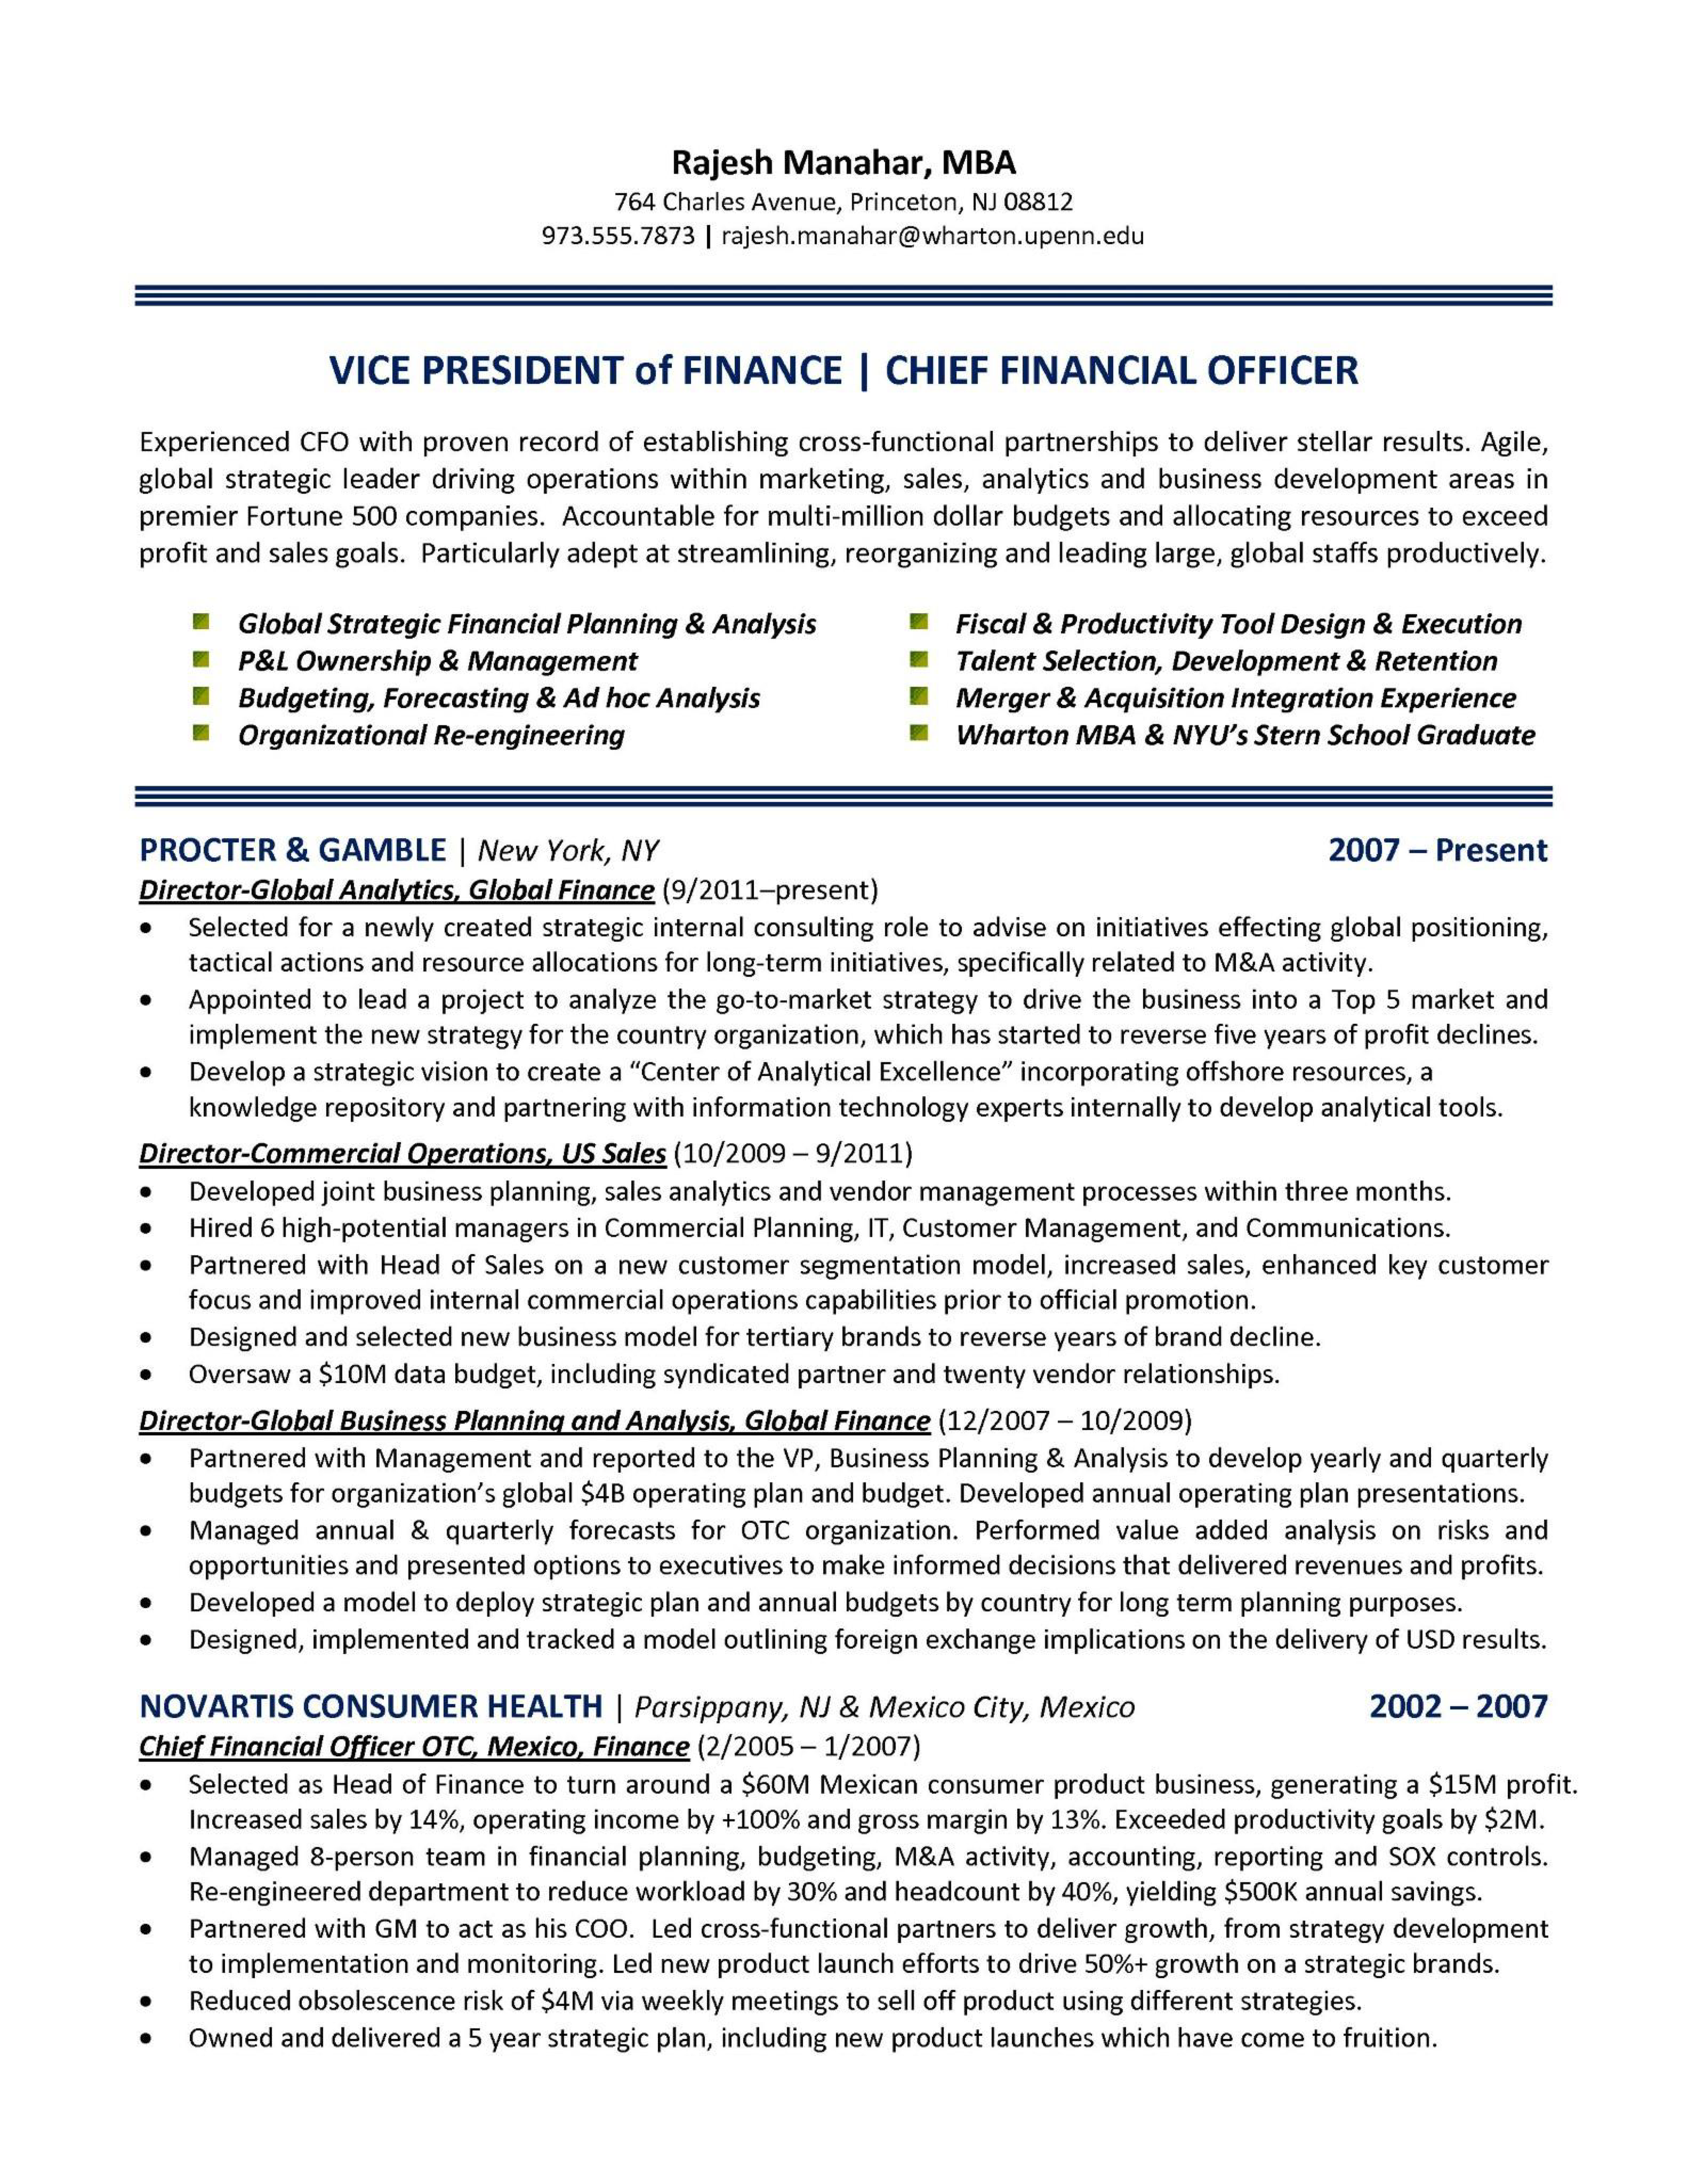 Chief Finance Officer Resume How To Draft A Chief Finance Officer Resume Download This Chief Finance Officer Resume Templa Finance Templates Download Resume